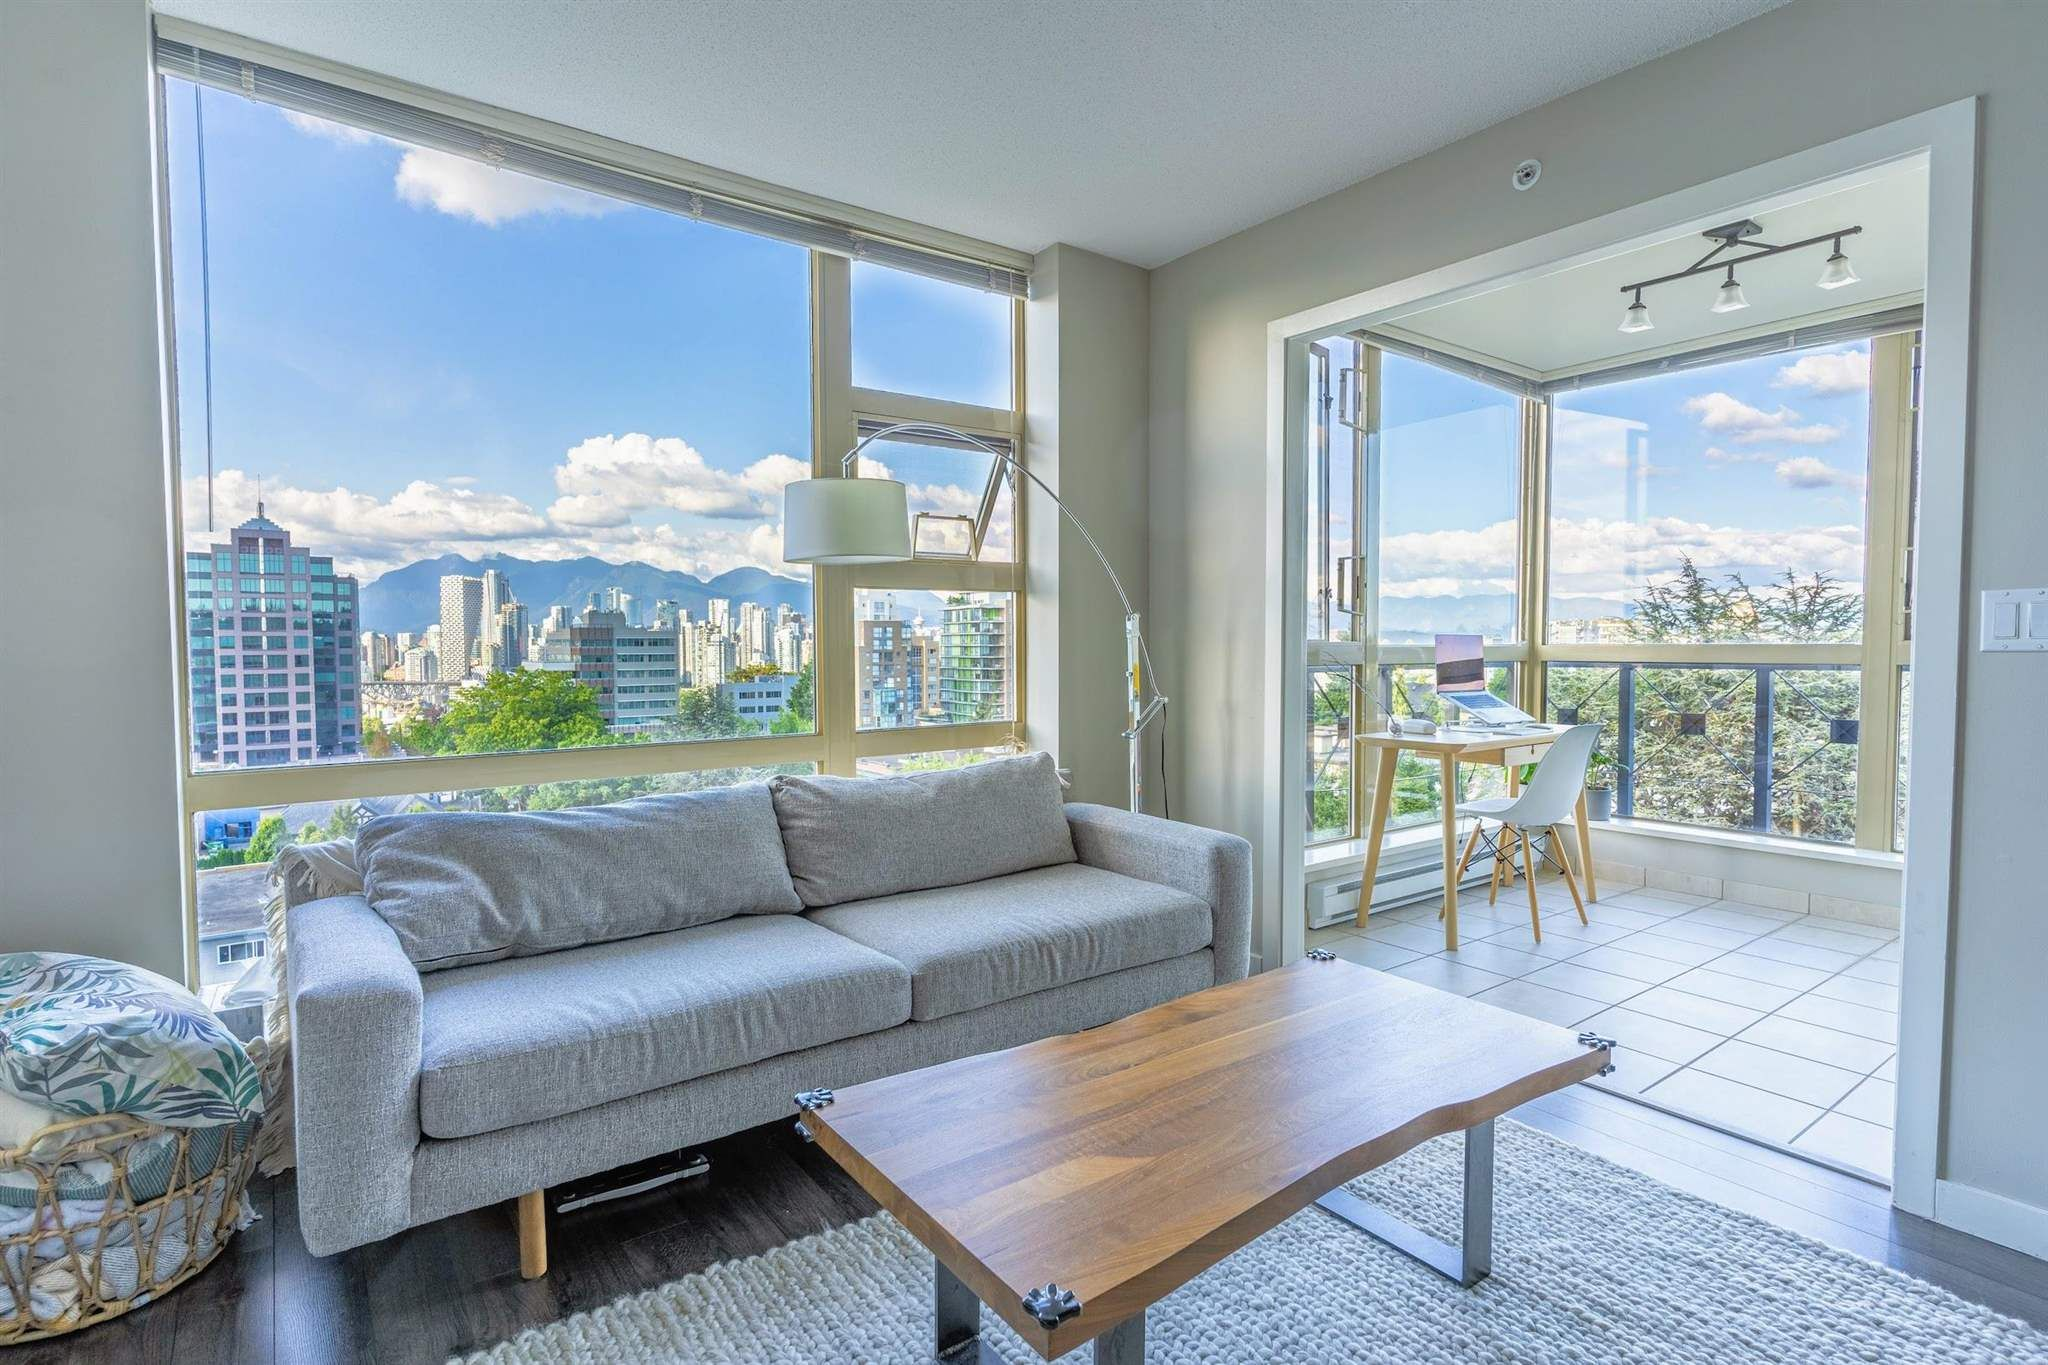 """Main Photo: 1005 1316 W 11TH Avenue in Vancouver: Fairview VW Condo for sale in """"THE COMPTON"""" (Vancouver West)  : MLS®# R2603717"""